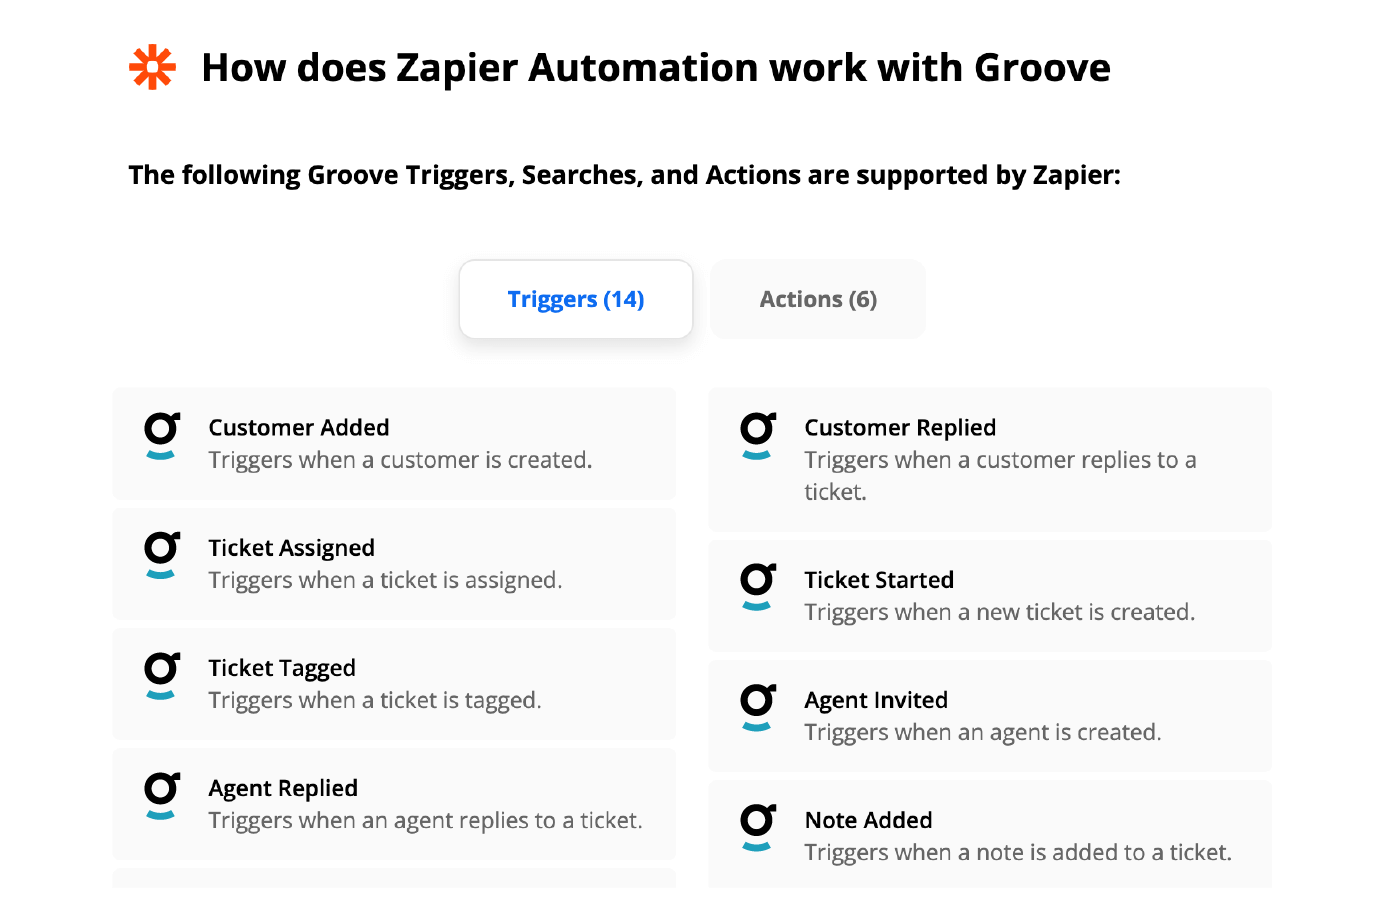 Customer service app 5 zapier integration with groove